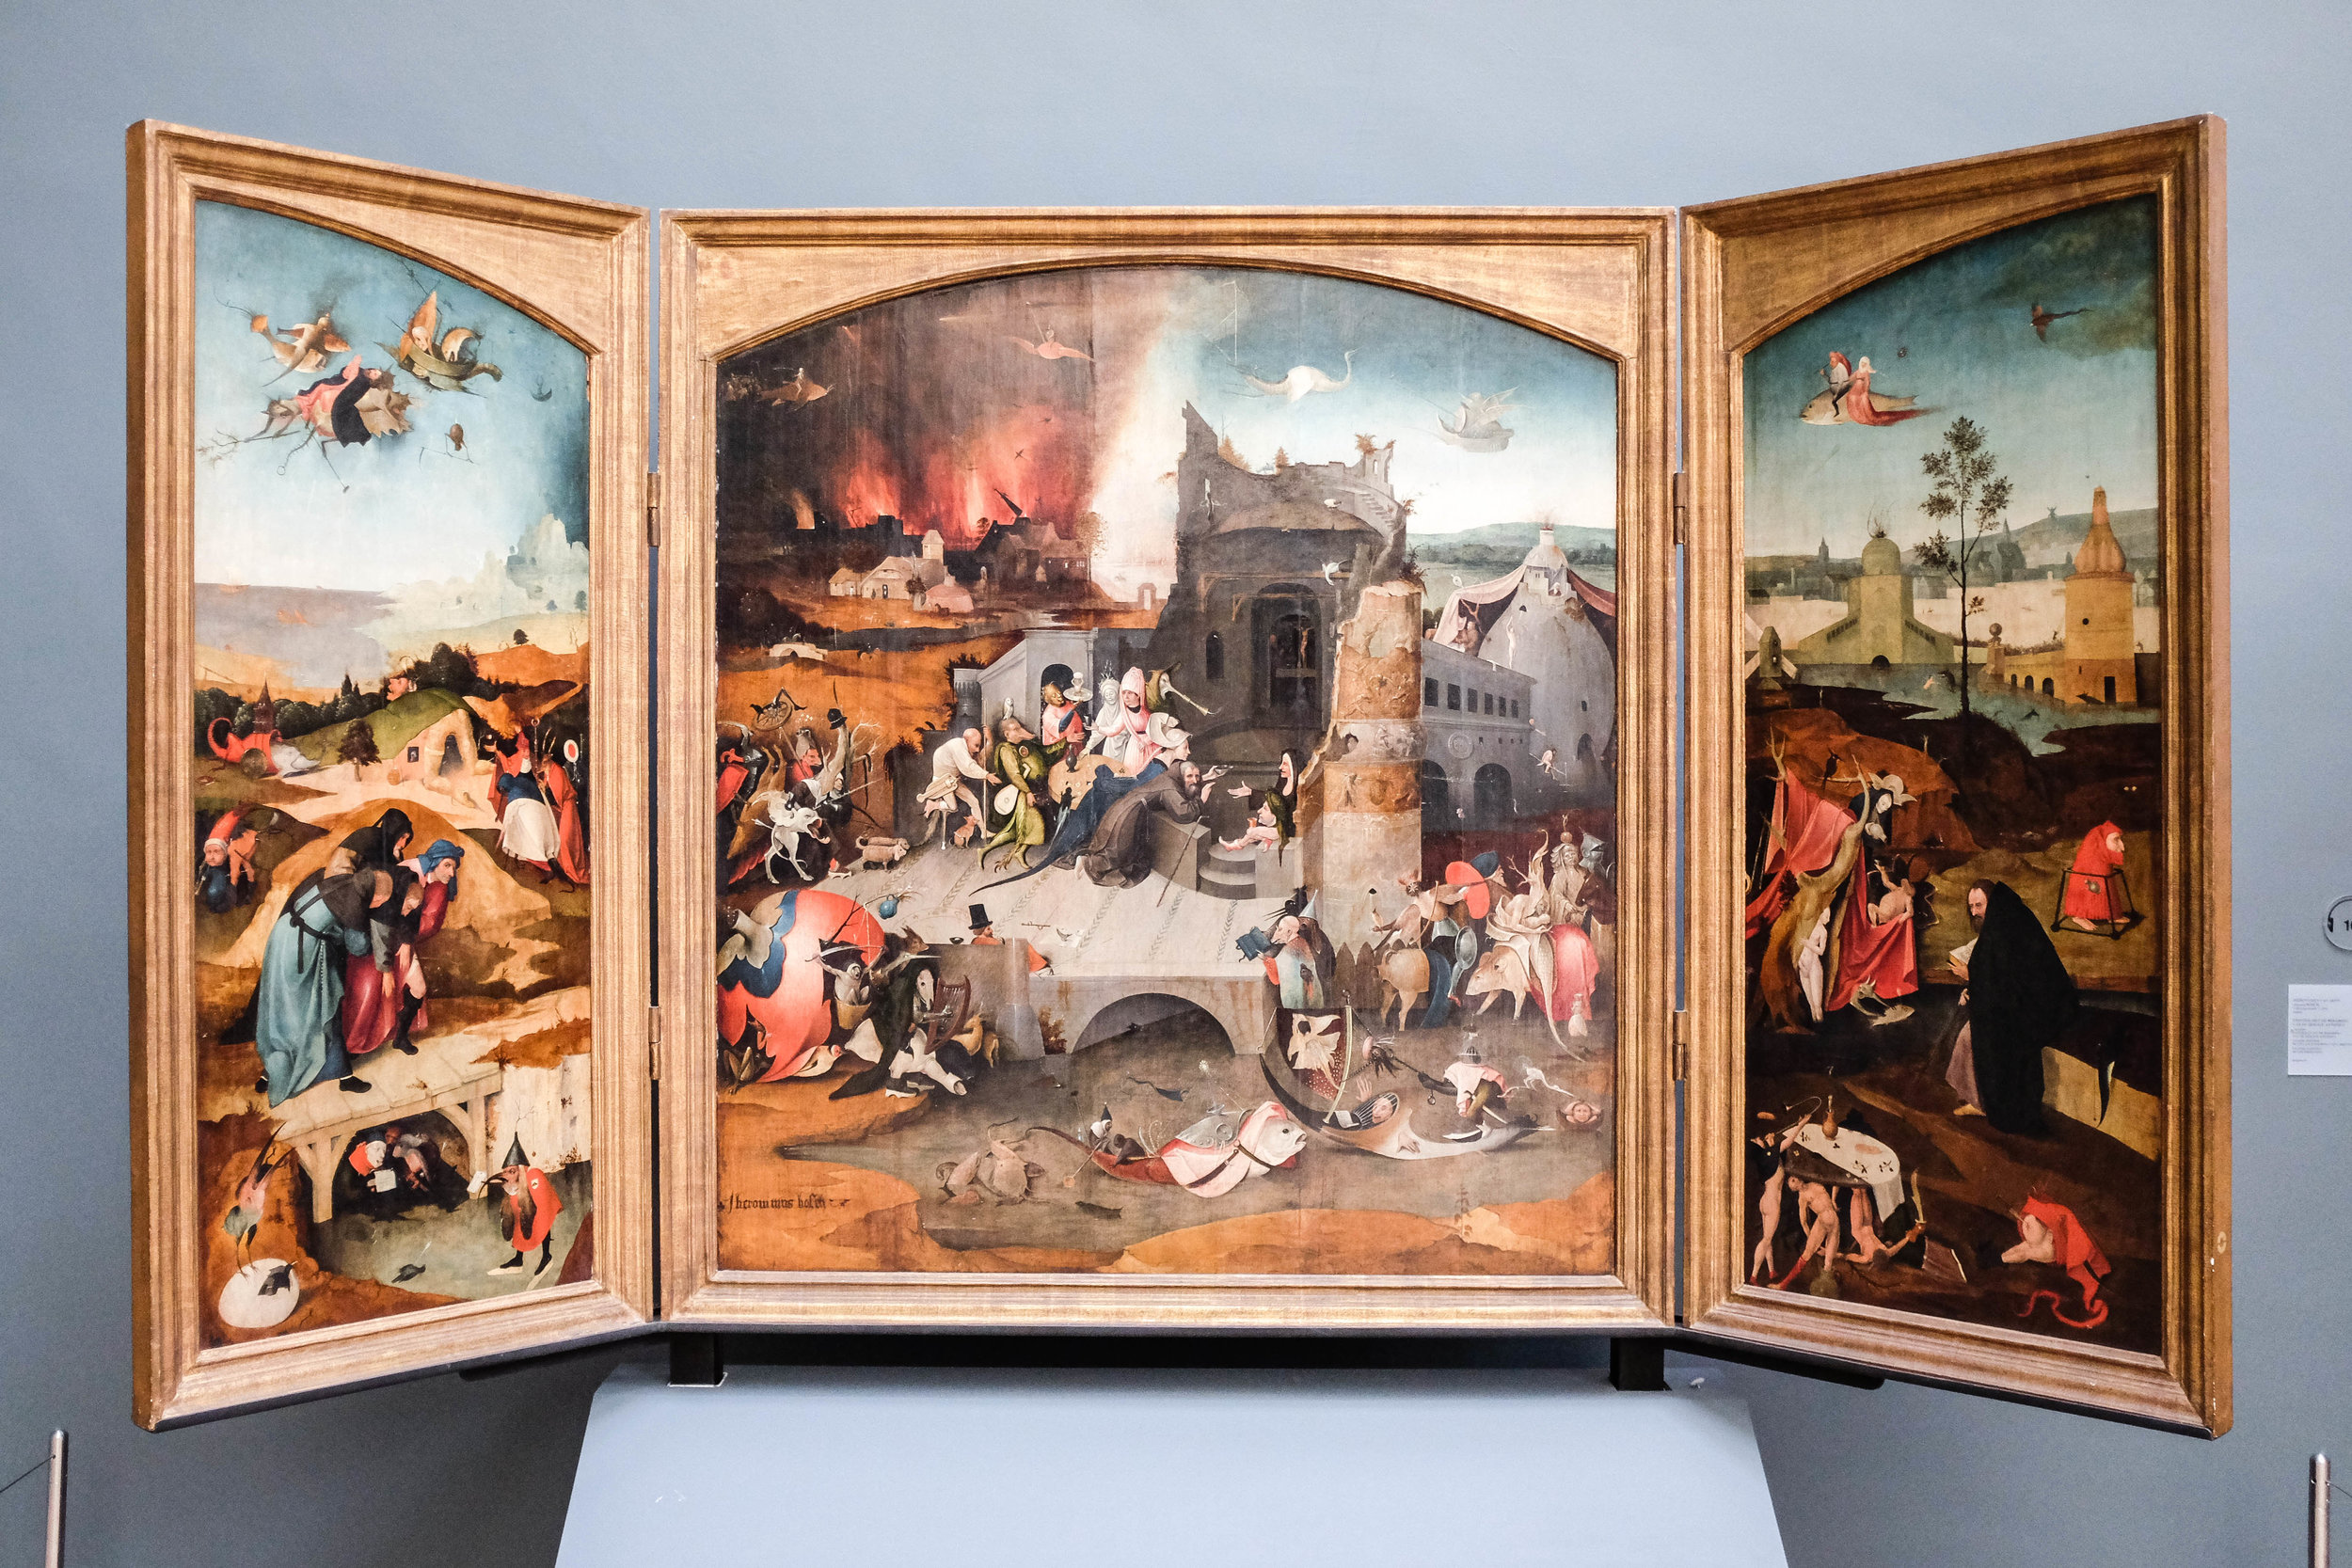 A triptych by the 16th century master Hieronymus Bosch - whose wild imagination paired with artistic talent brought us some truly odd, often nightmarish pieces.